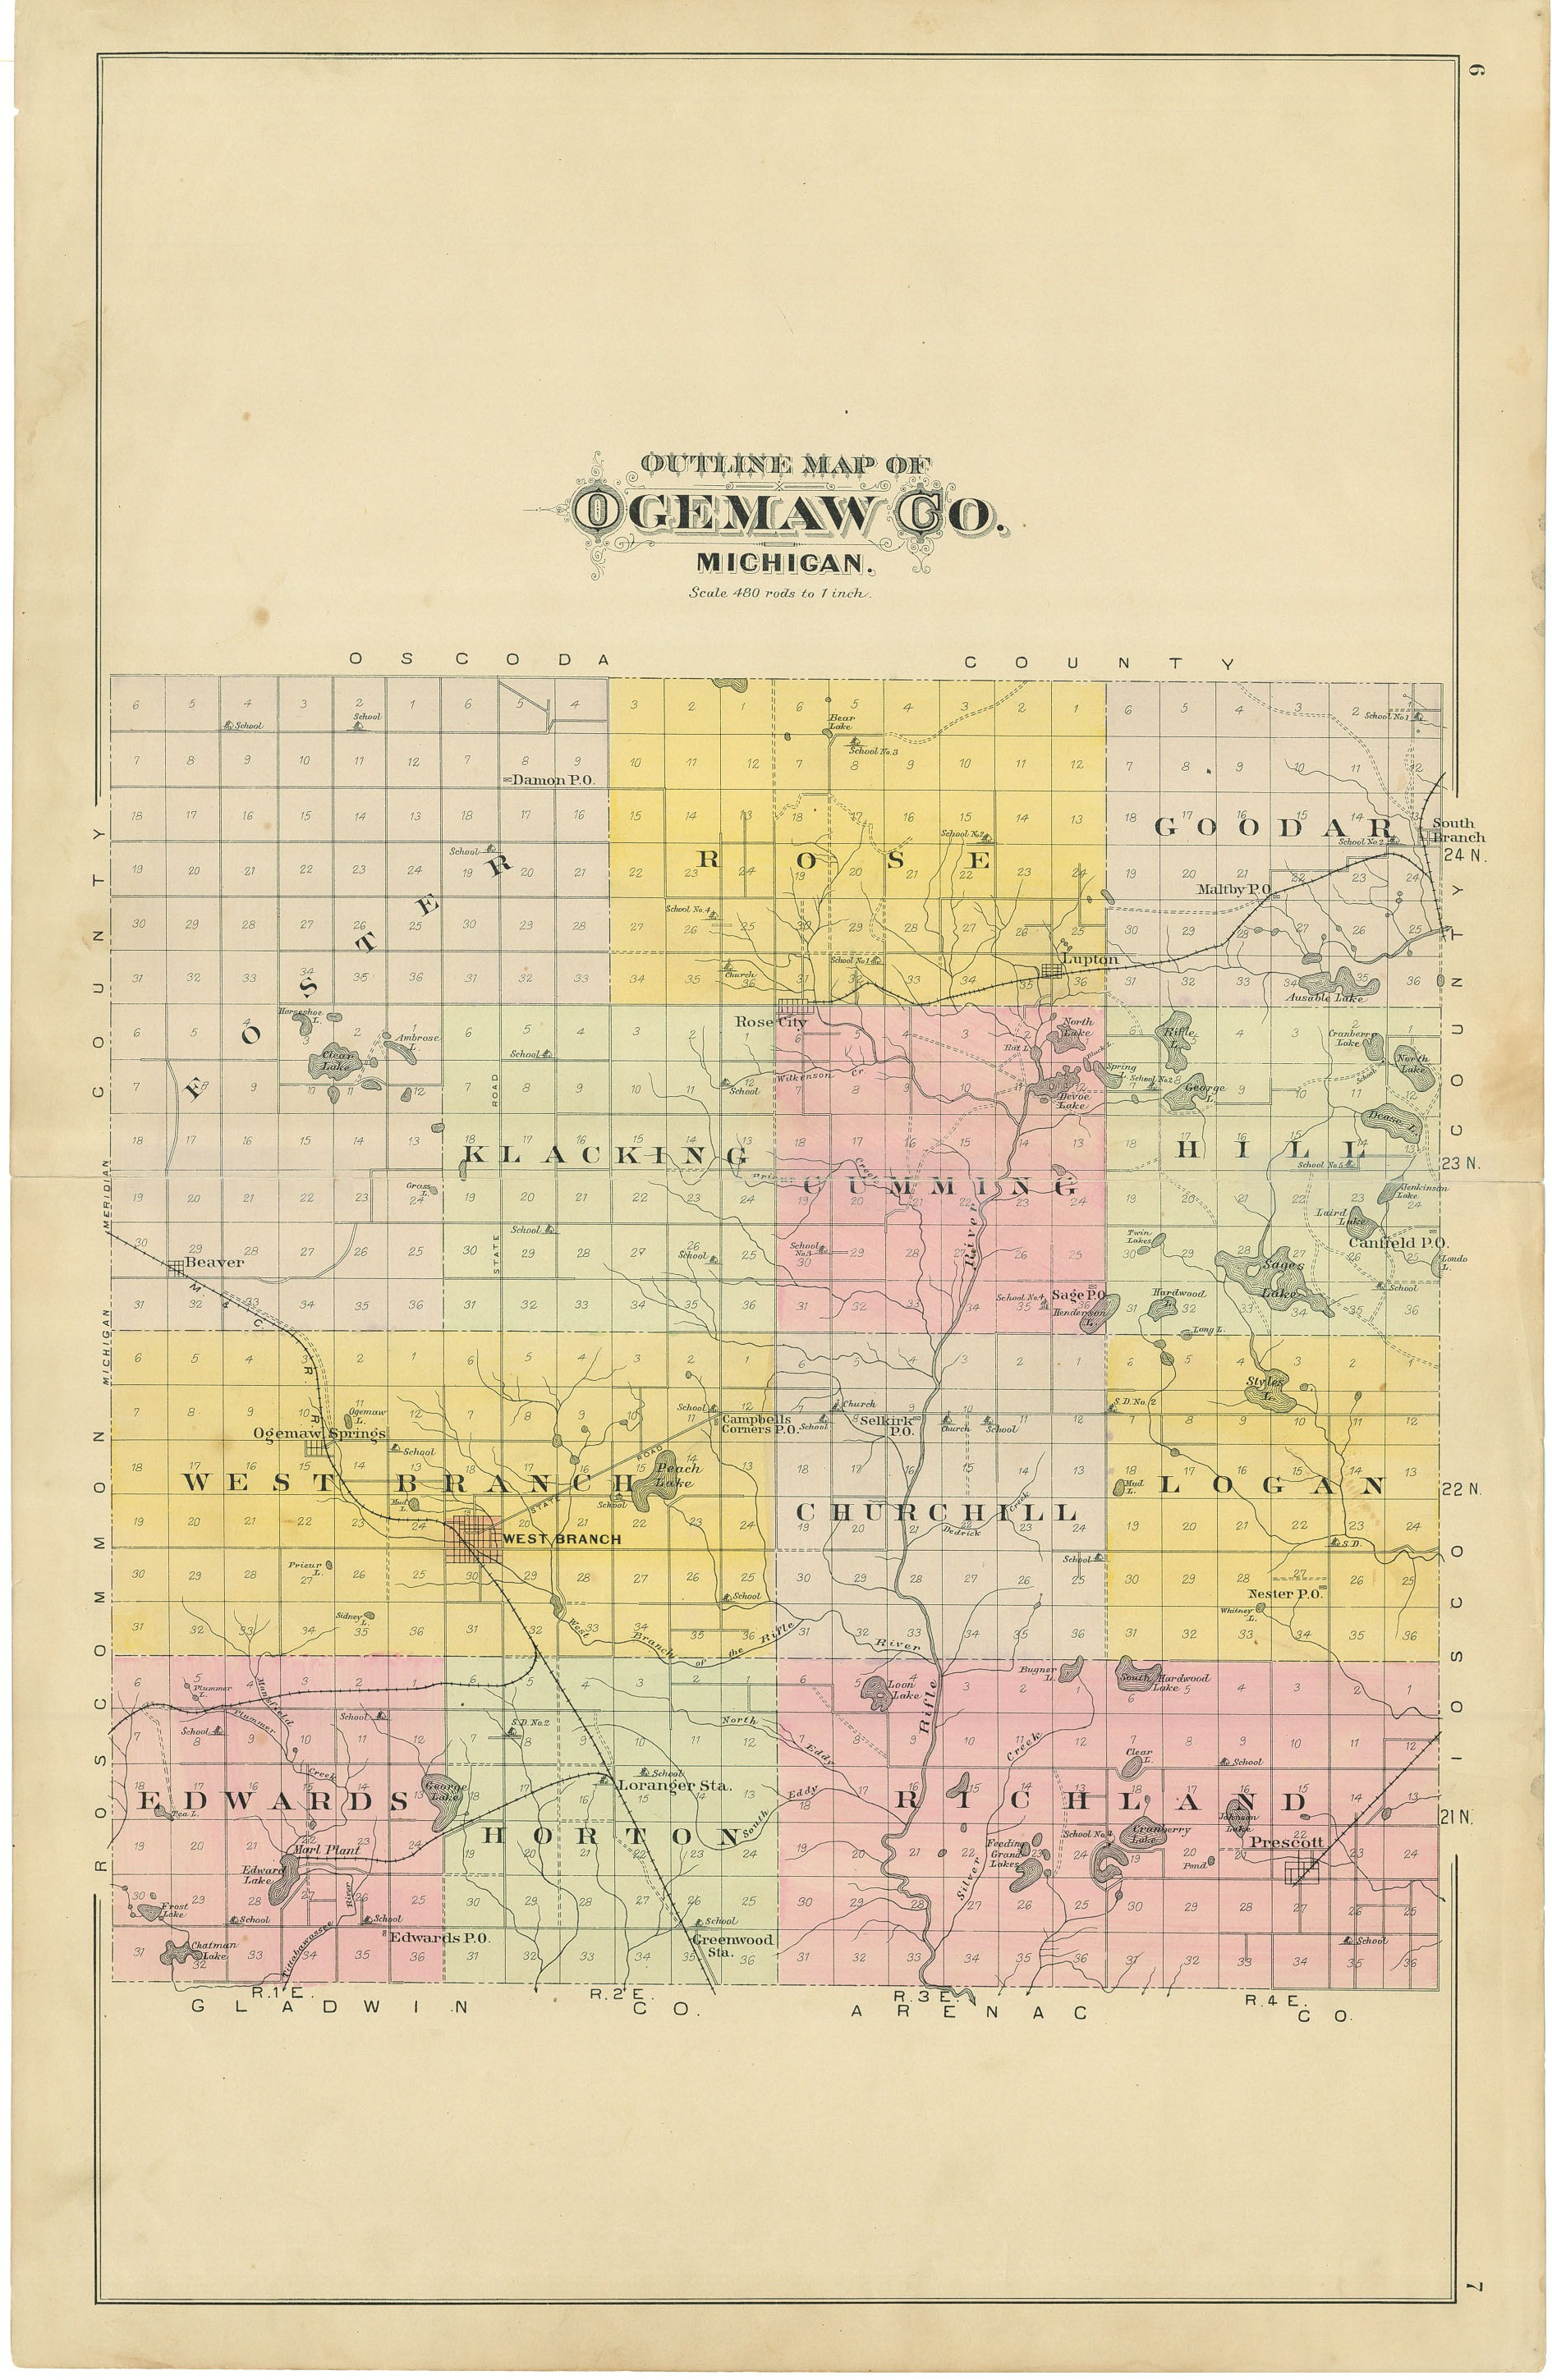 ogemaw county plat book map of ogemaw county pages 6 7